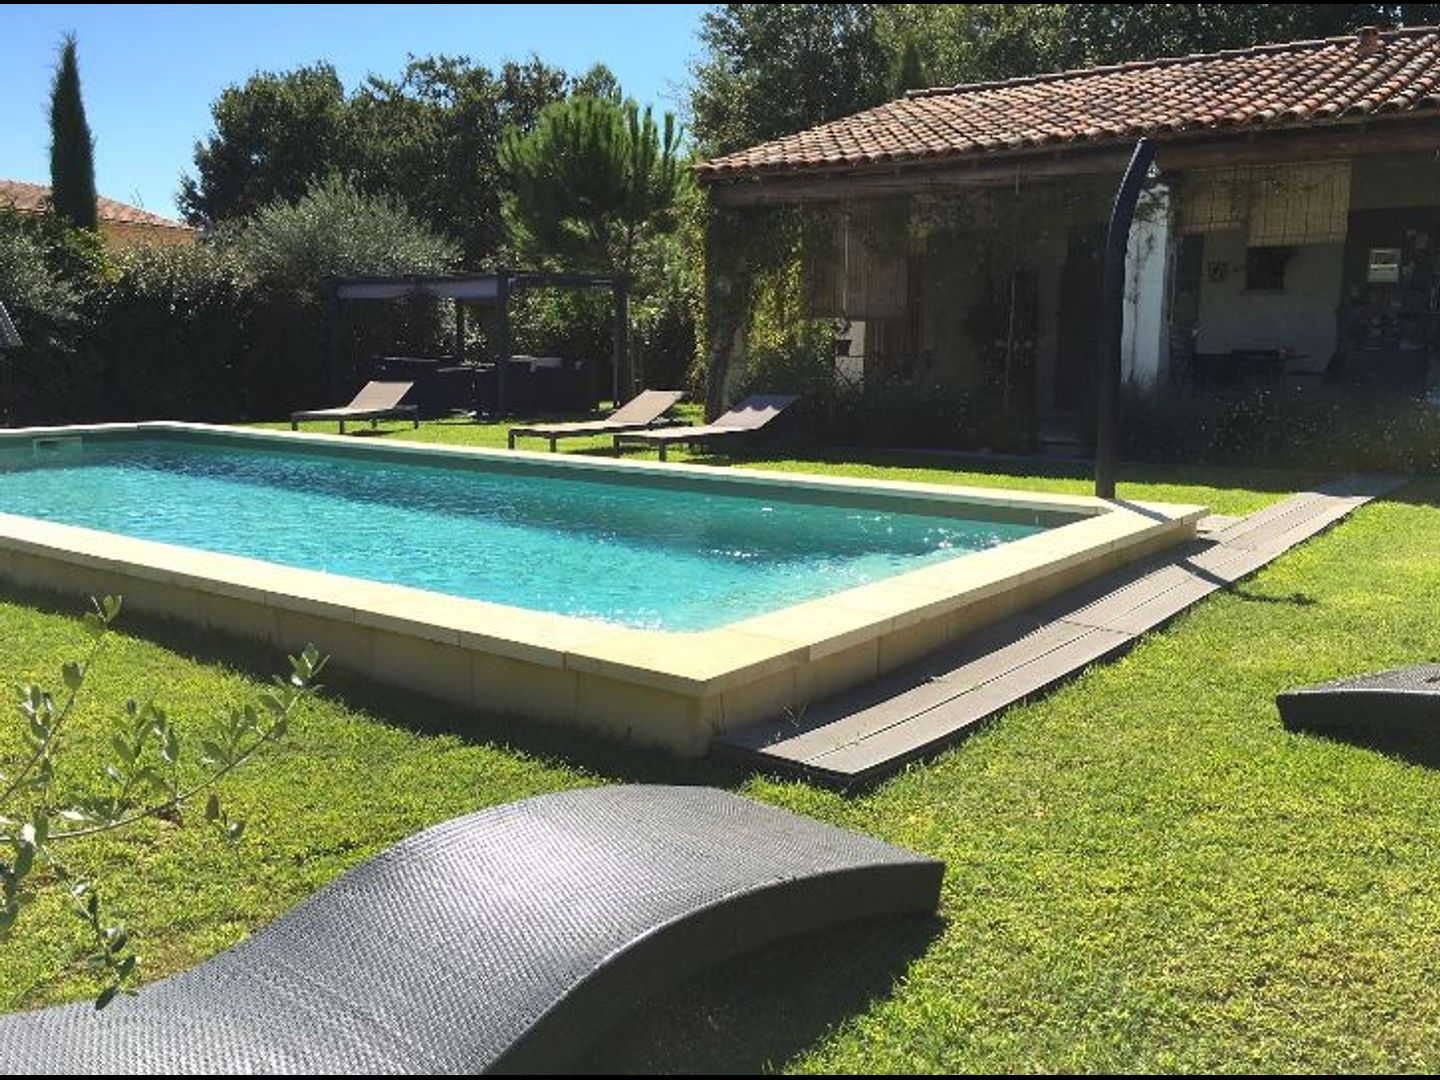 A large lawn in front of a pool at Le Jardin de Lau.